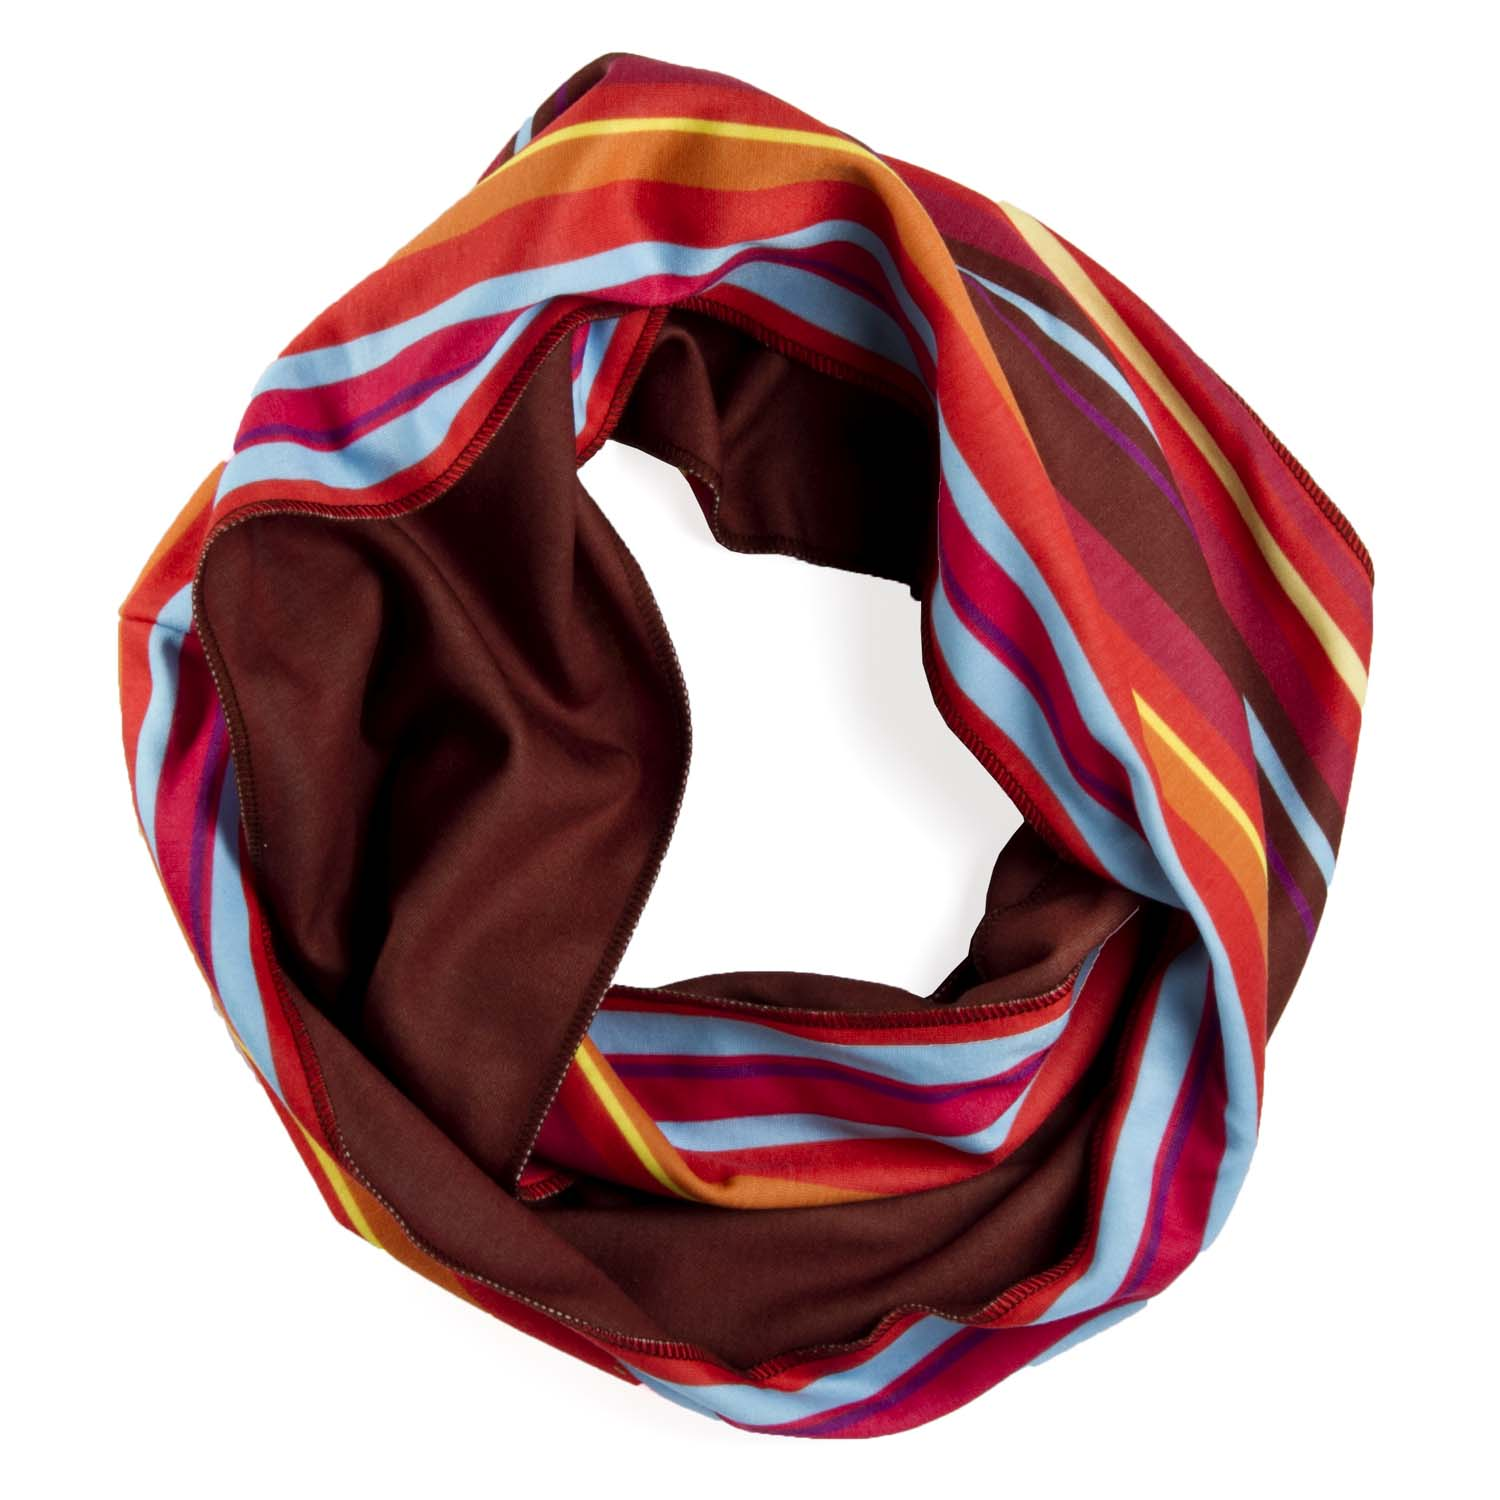 Enjoy free shipping and easy returns every day at Kohl's. Find great deals on Infinity Scarves at Kohl's today!